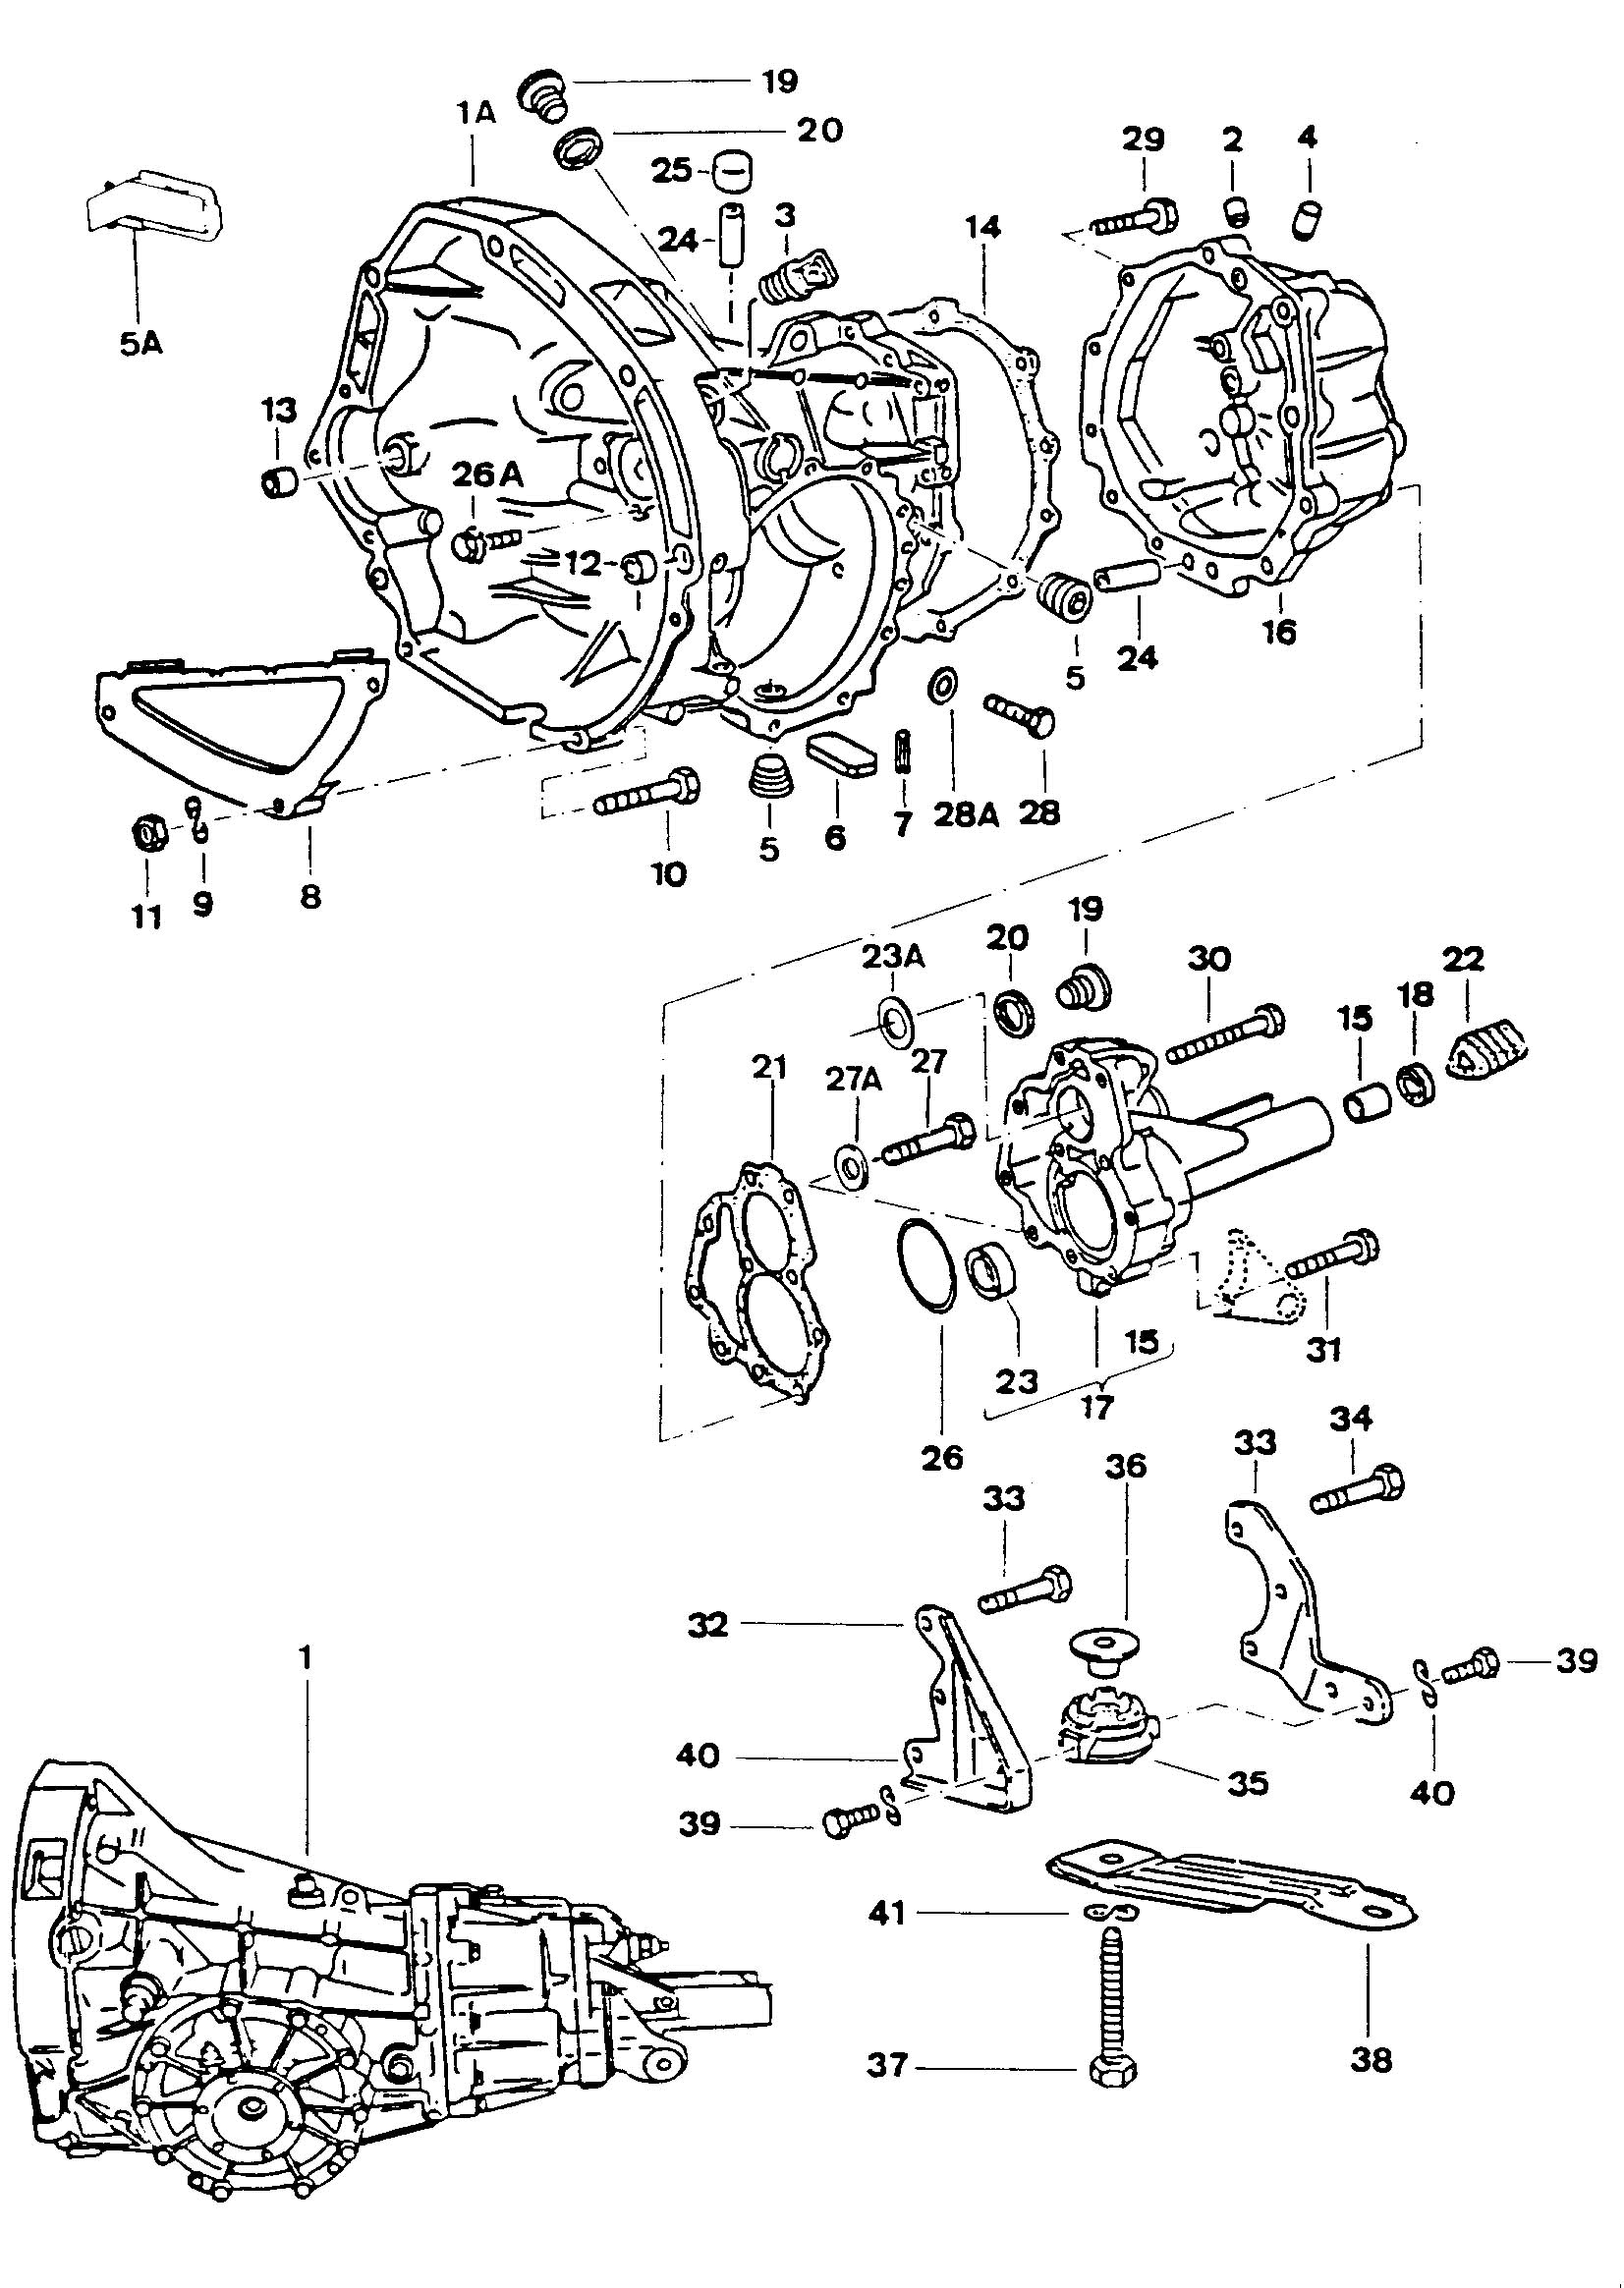 Service manual [1992 Volkswagen Riolet Manual Transmission